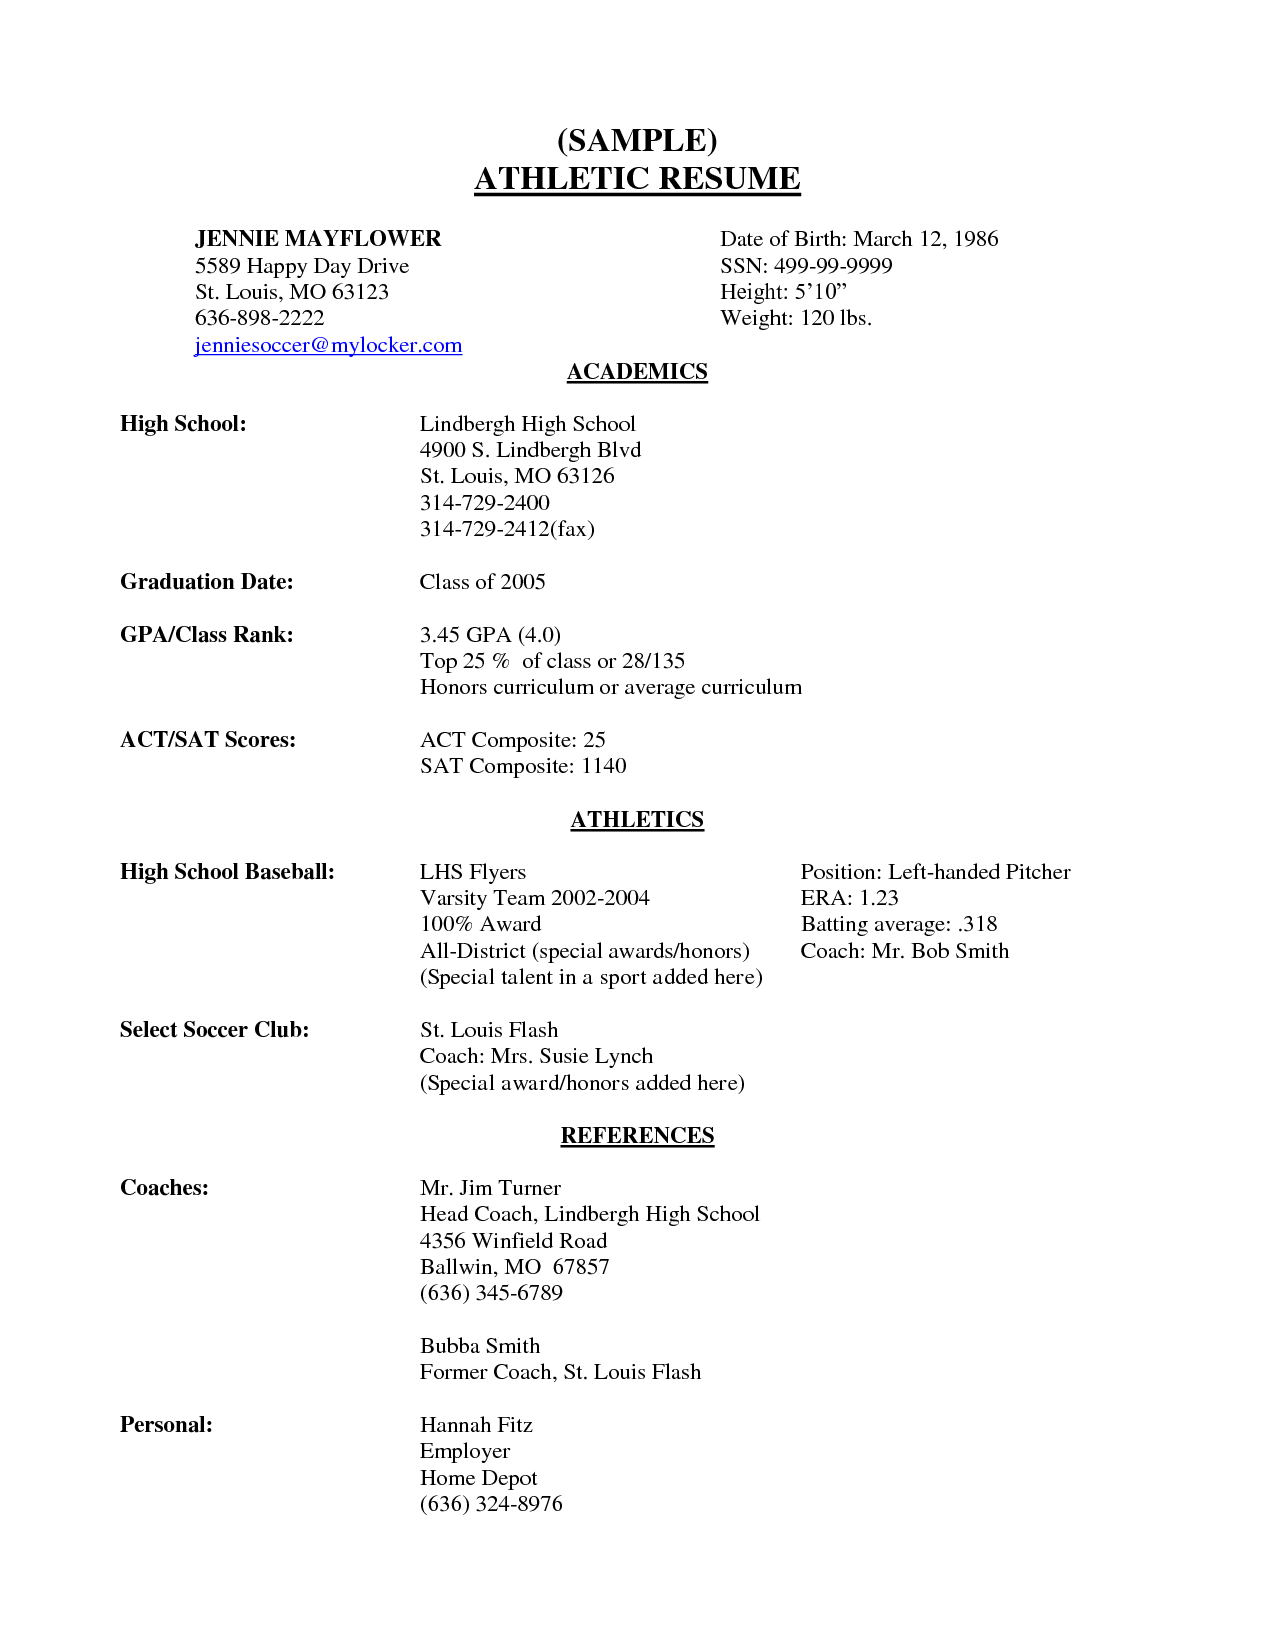 high school senior resume sample scope work template students examples college resumes for seniors - Sample College Resumes For High School Seniors